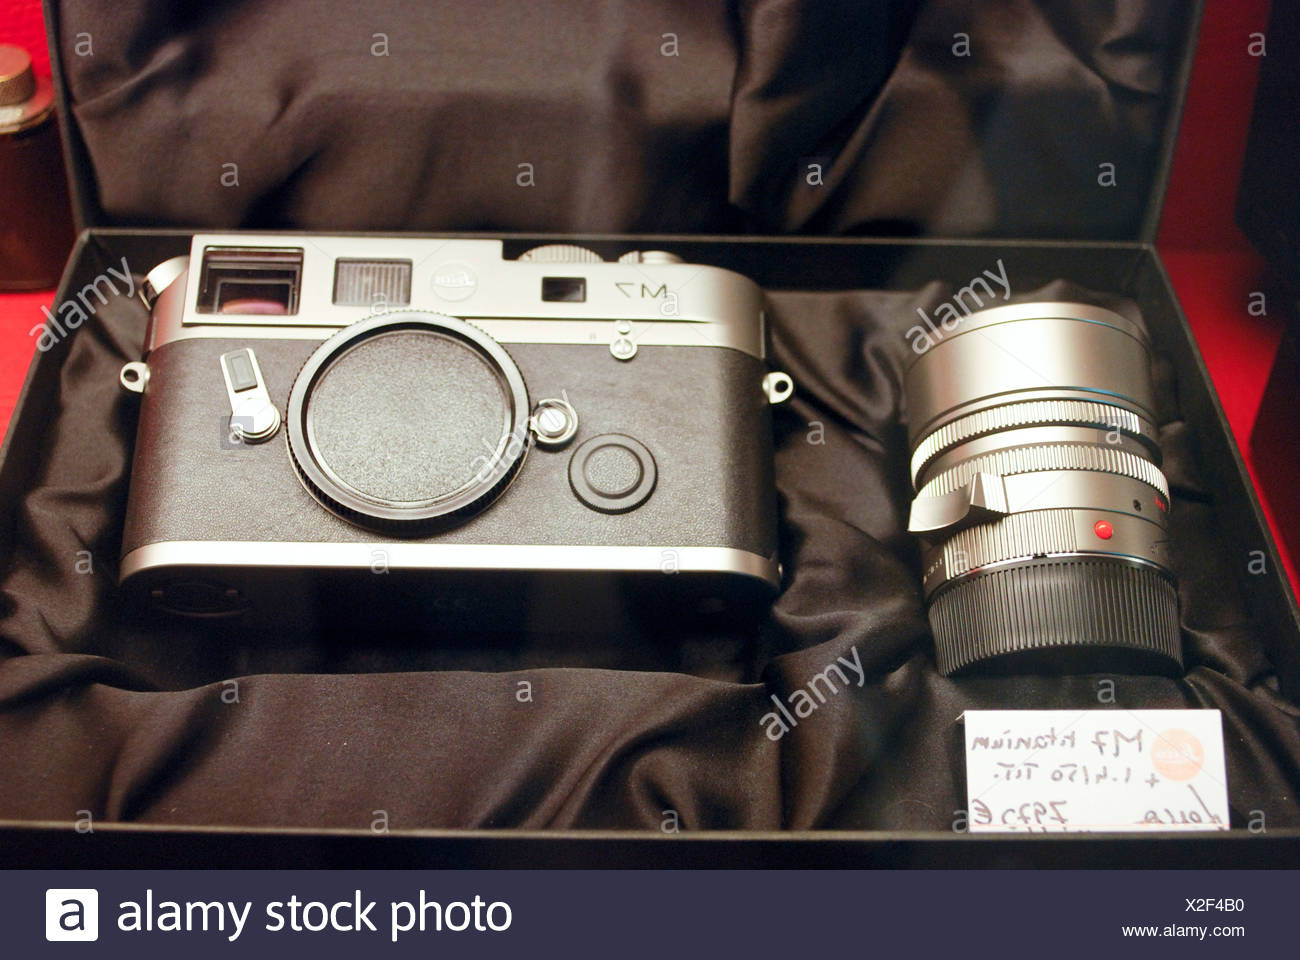 Analog LEICA M7 and lens in case - Stock Image